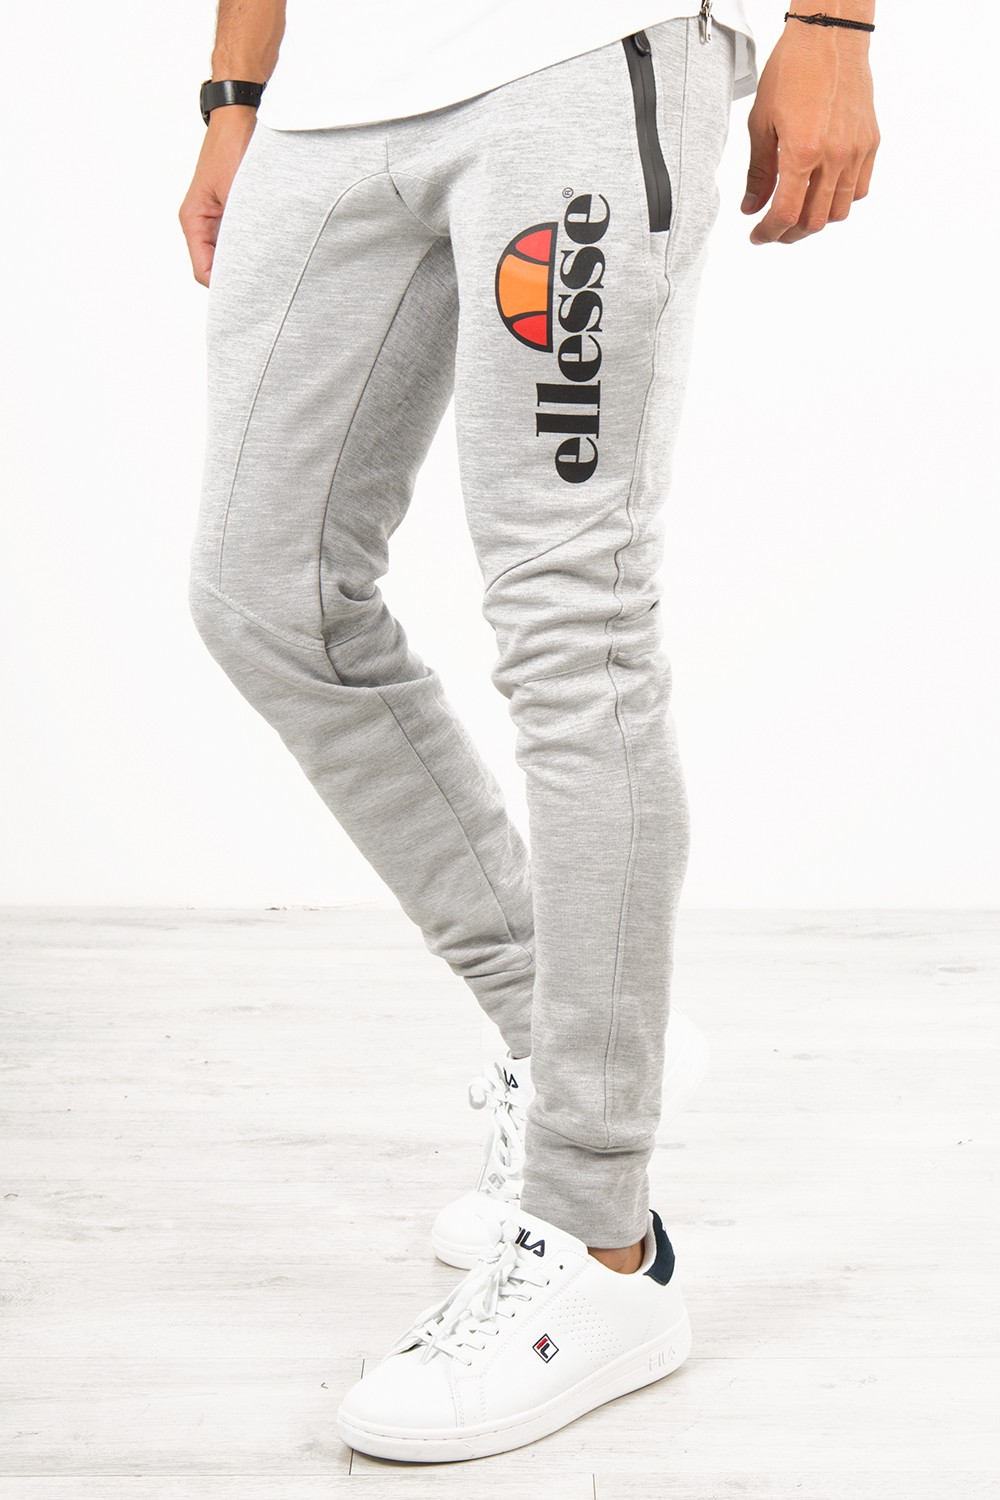 Gris Ellesse Tech Jogging Fleece Tech Ellesse Gris Jogging Jogging Tech Fleece Ivby6gm7Yf